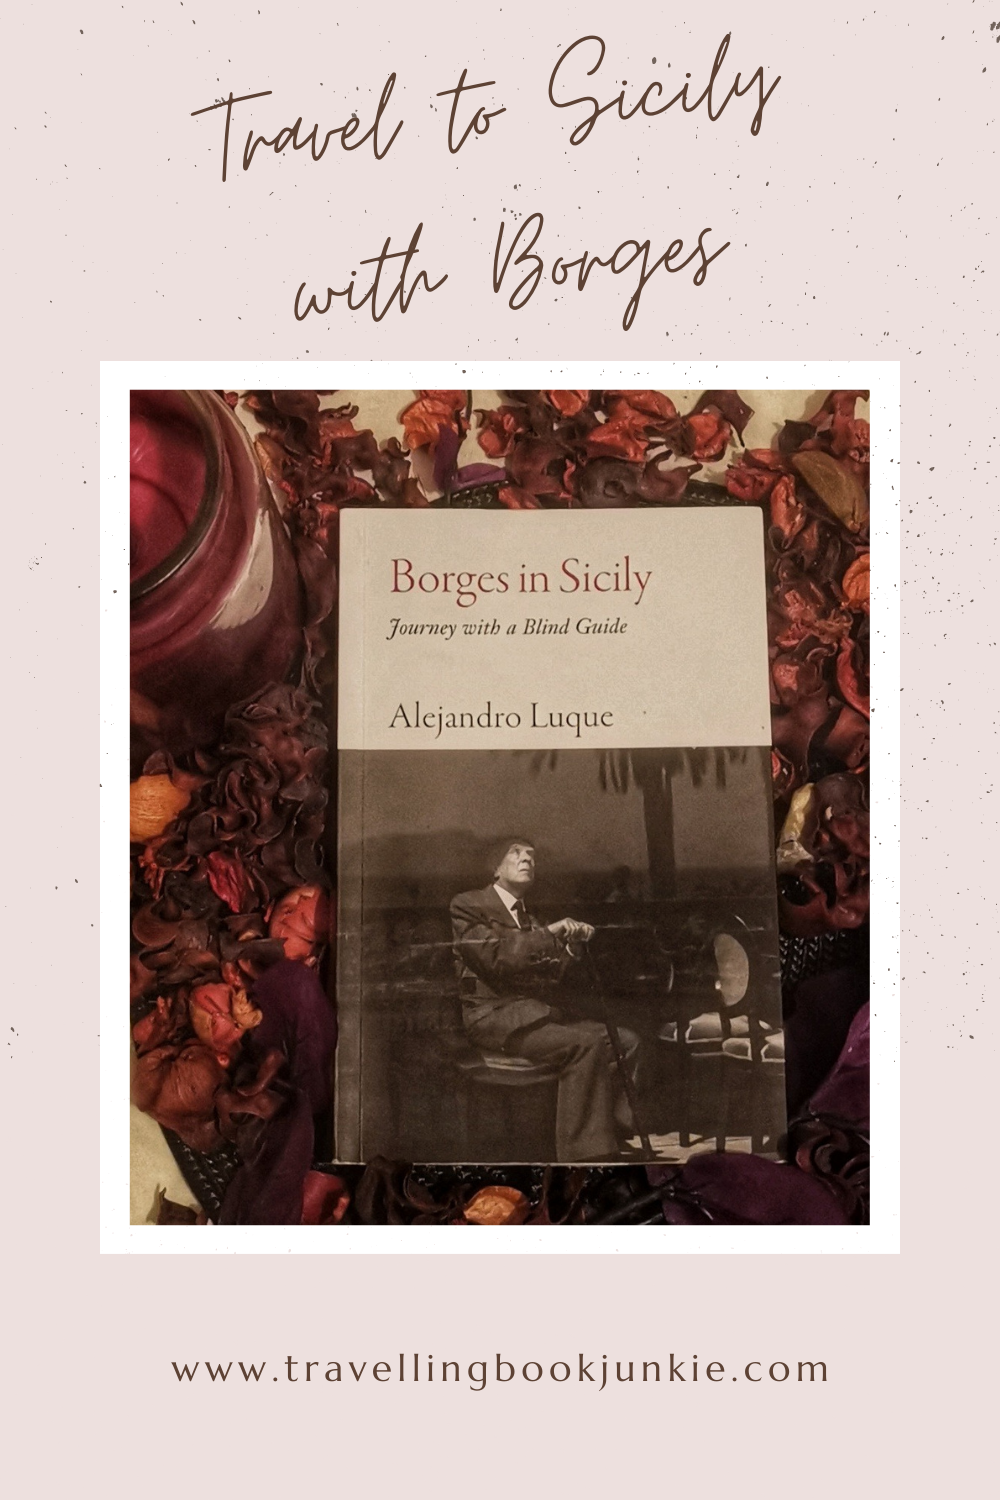 Borges in Sicily by Alejandro Luque recreates the trip that Borges took after he lost his sight. See the full review on @tbookjunkie on this travelogue.